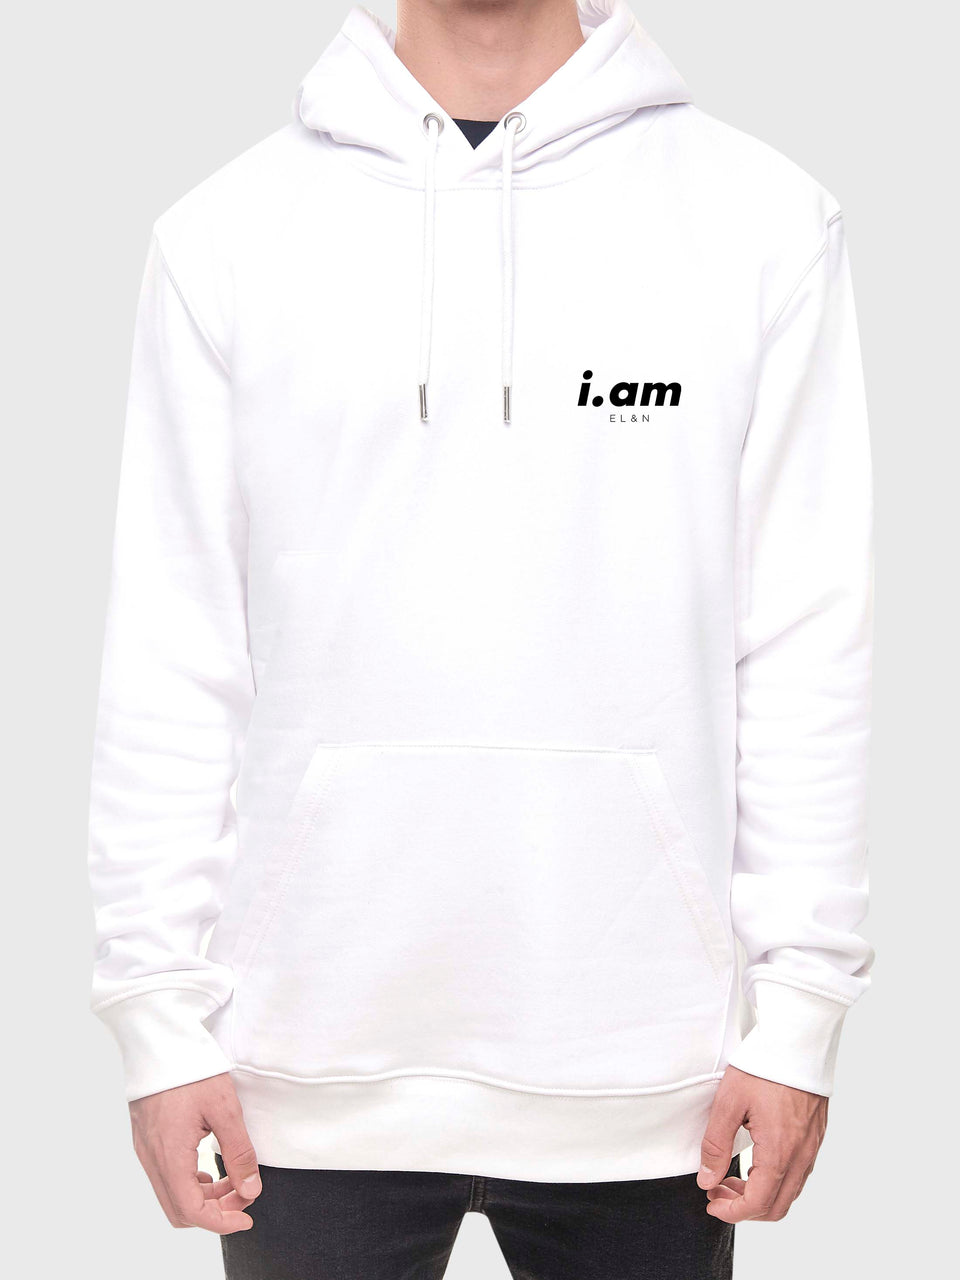 Showing not telling - White / Grey - Unisex pull over hoodie